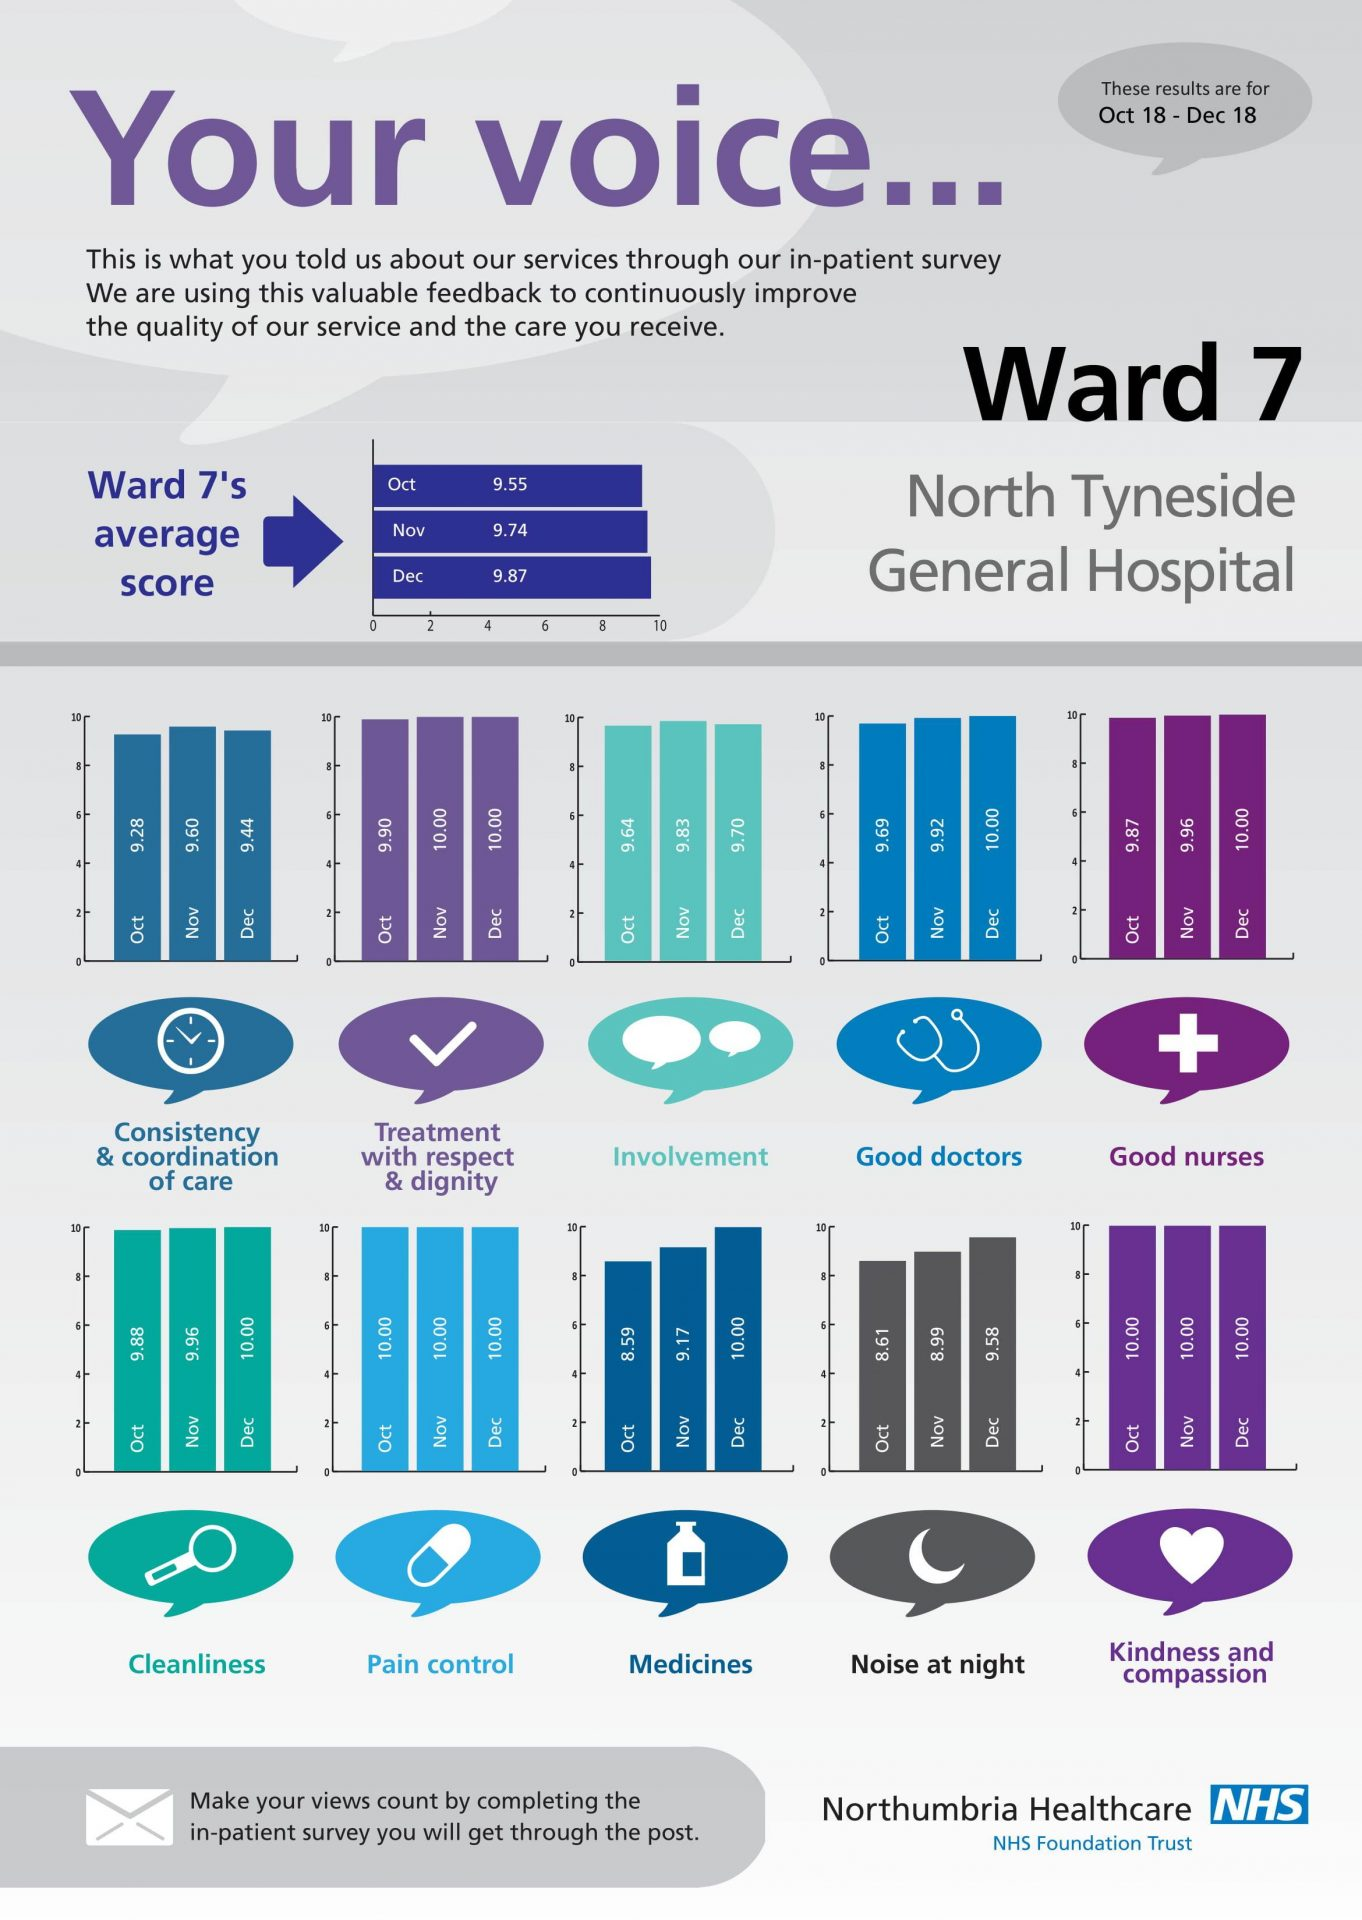 North Tyneside General Hospital - Ward 7-1